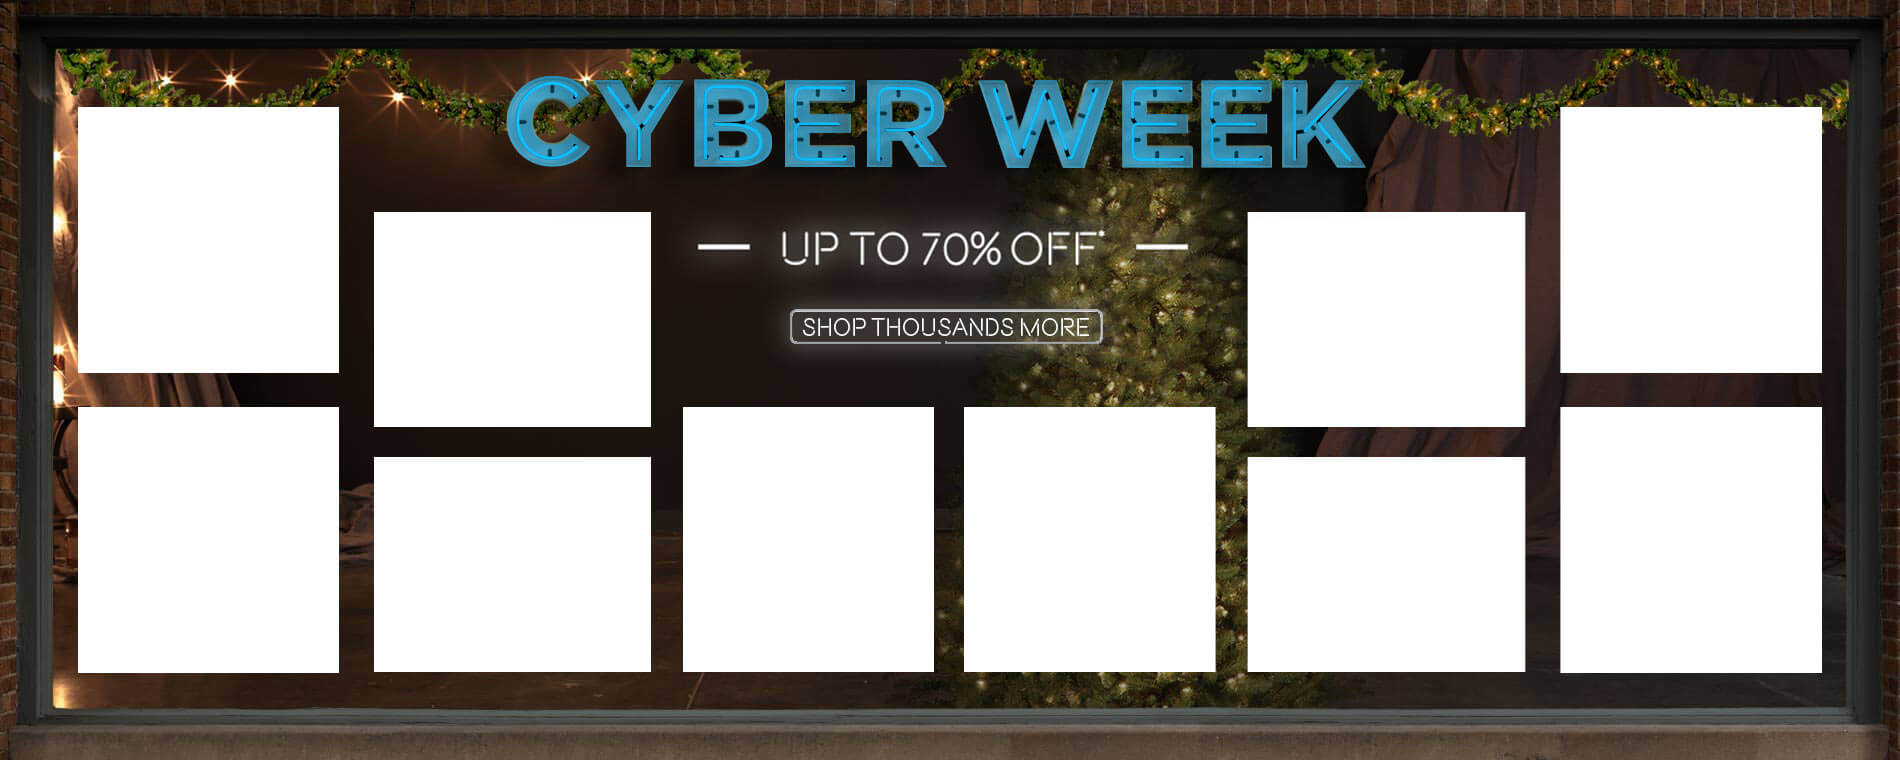 Cyber Week. Up to 70% Off. Shop Thousands More.